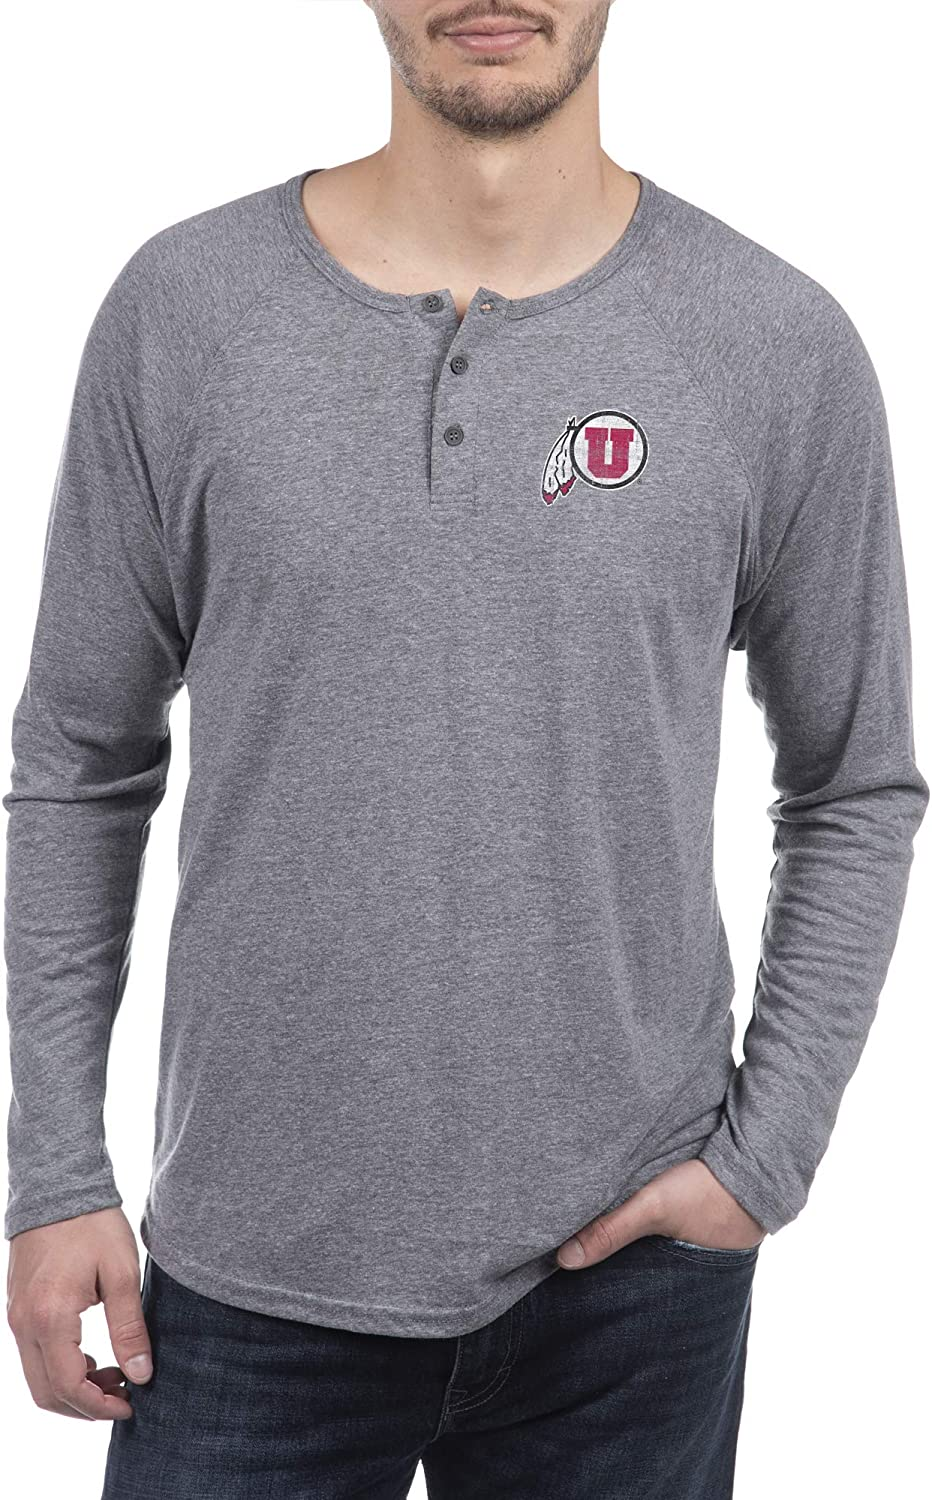 Top of the World NCAA Mens Premium Triblend Long Sleeve Gray Heather Henley